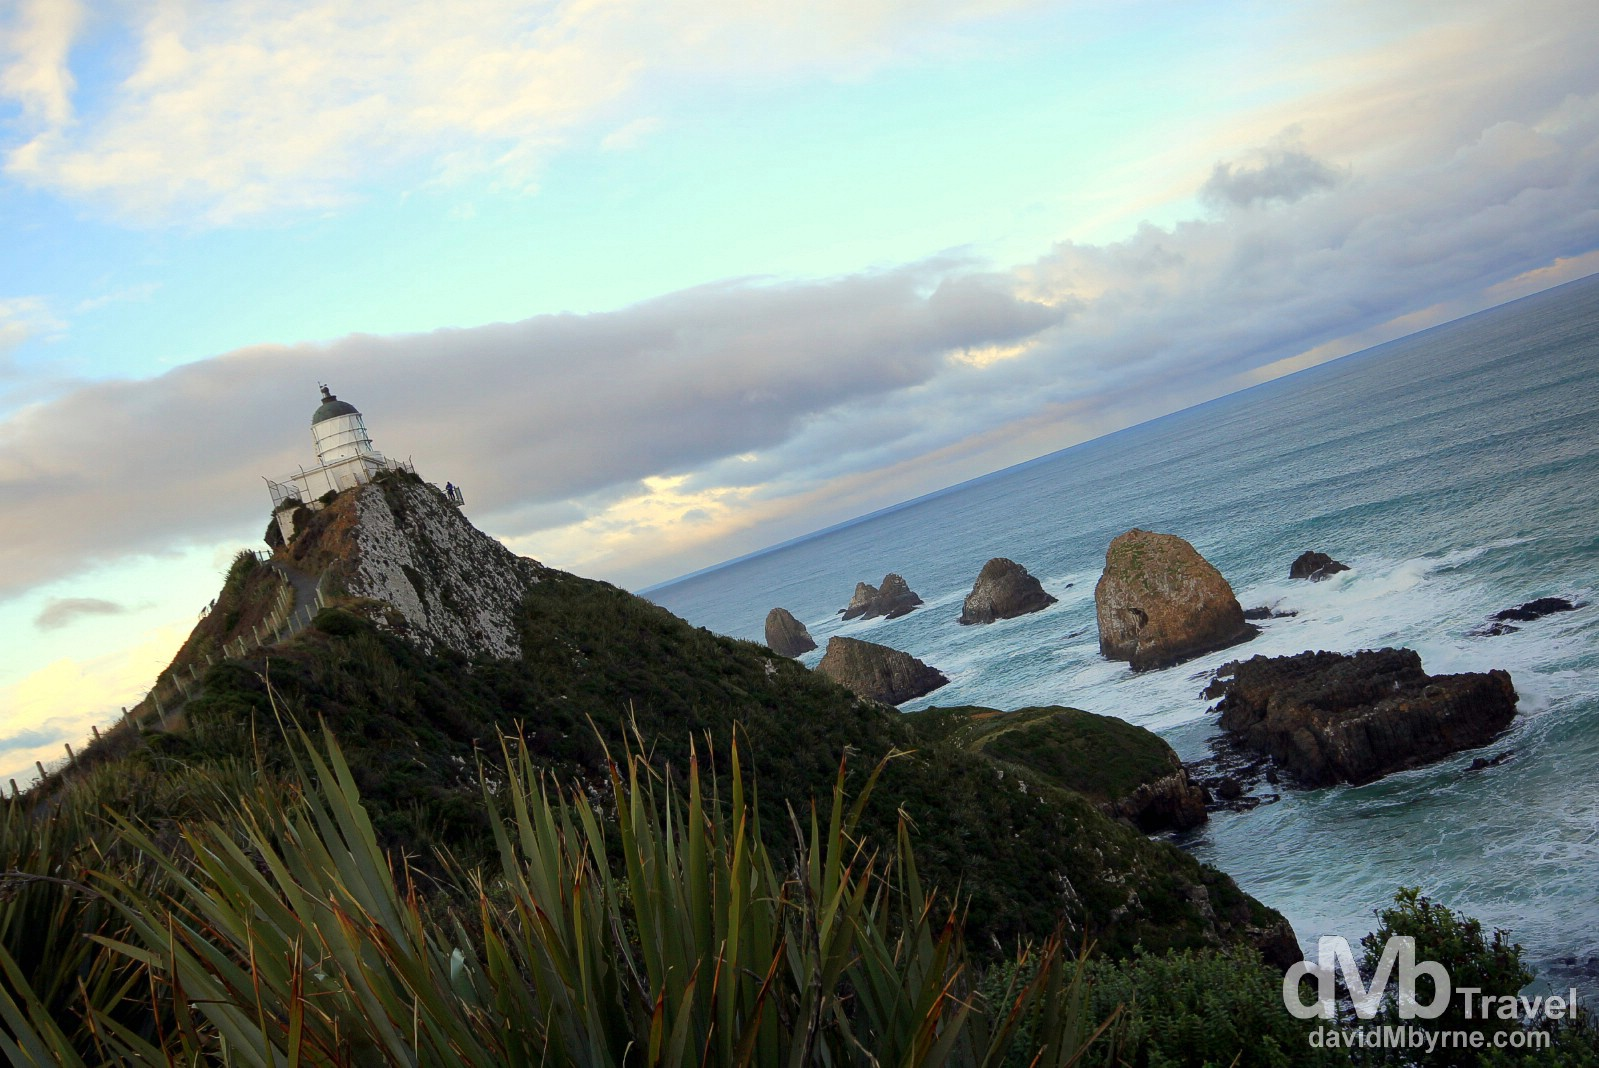 Nugget Point, The Catlins, South Island, New Zealand. May 28th 2012.